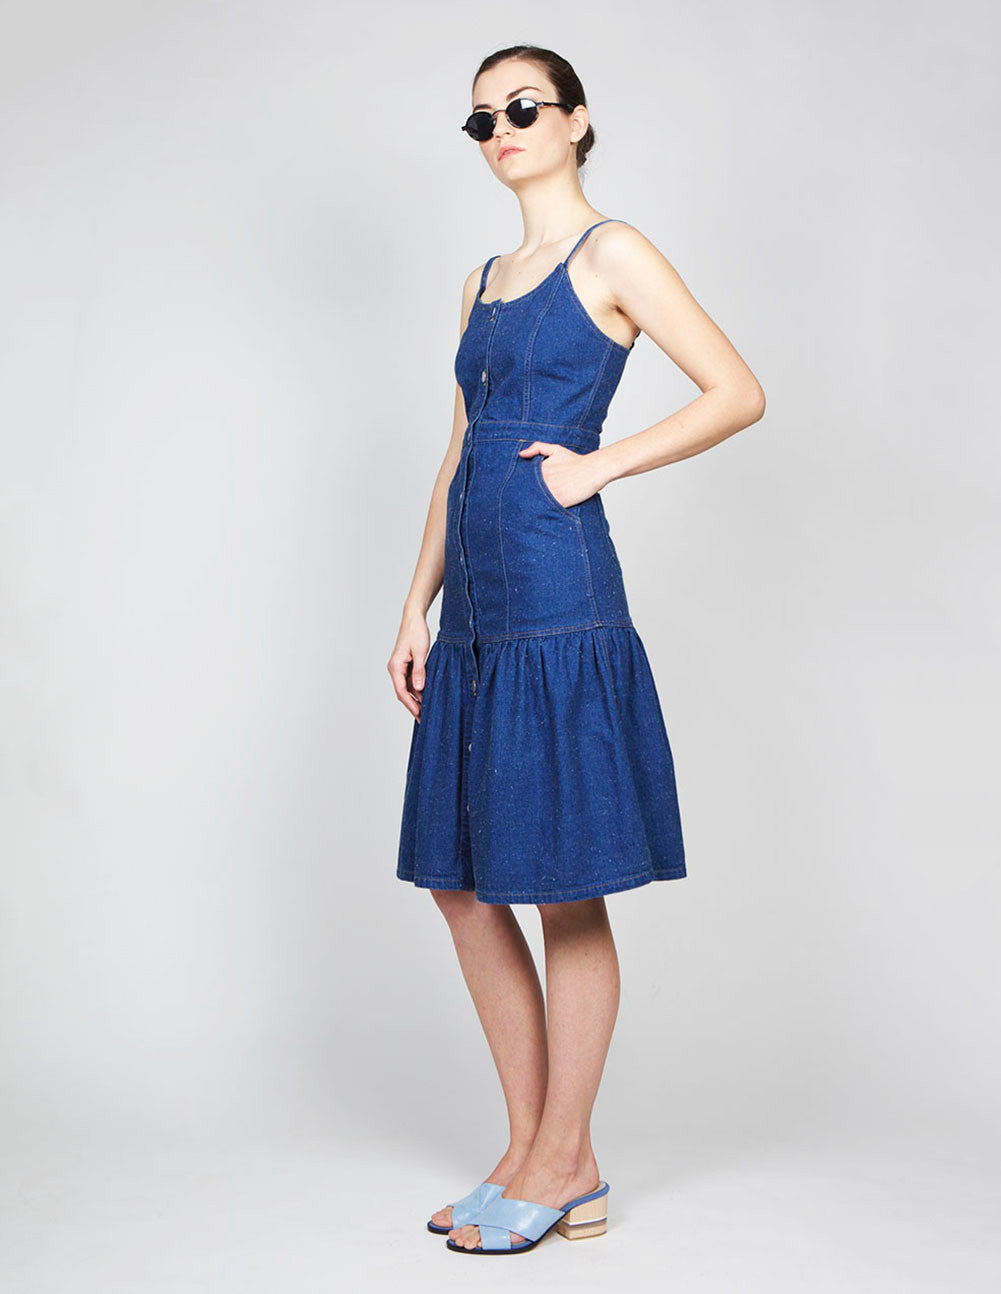 Spaghetti Strap Denim Dress